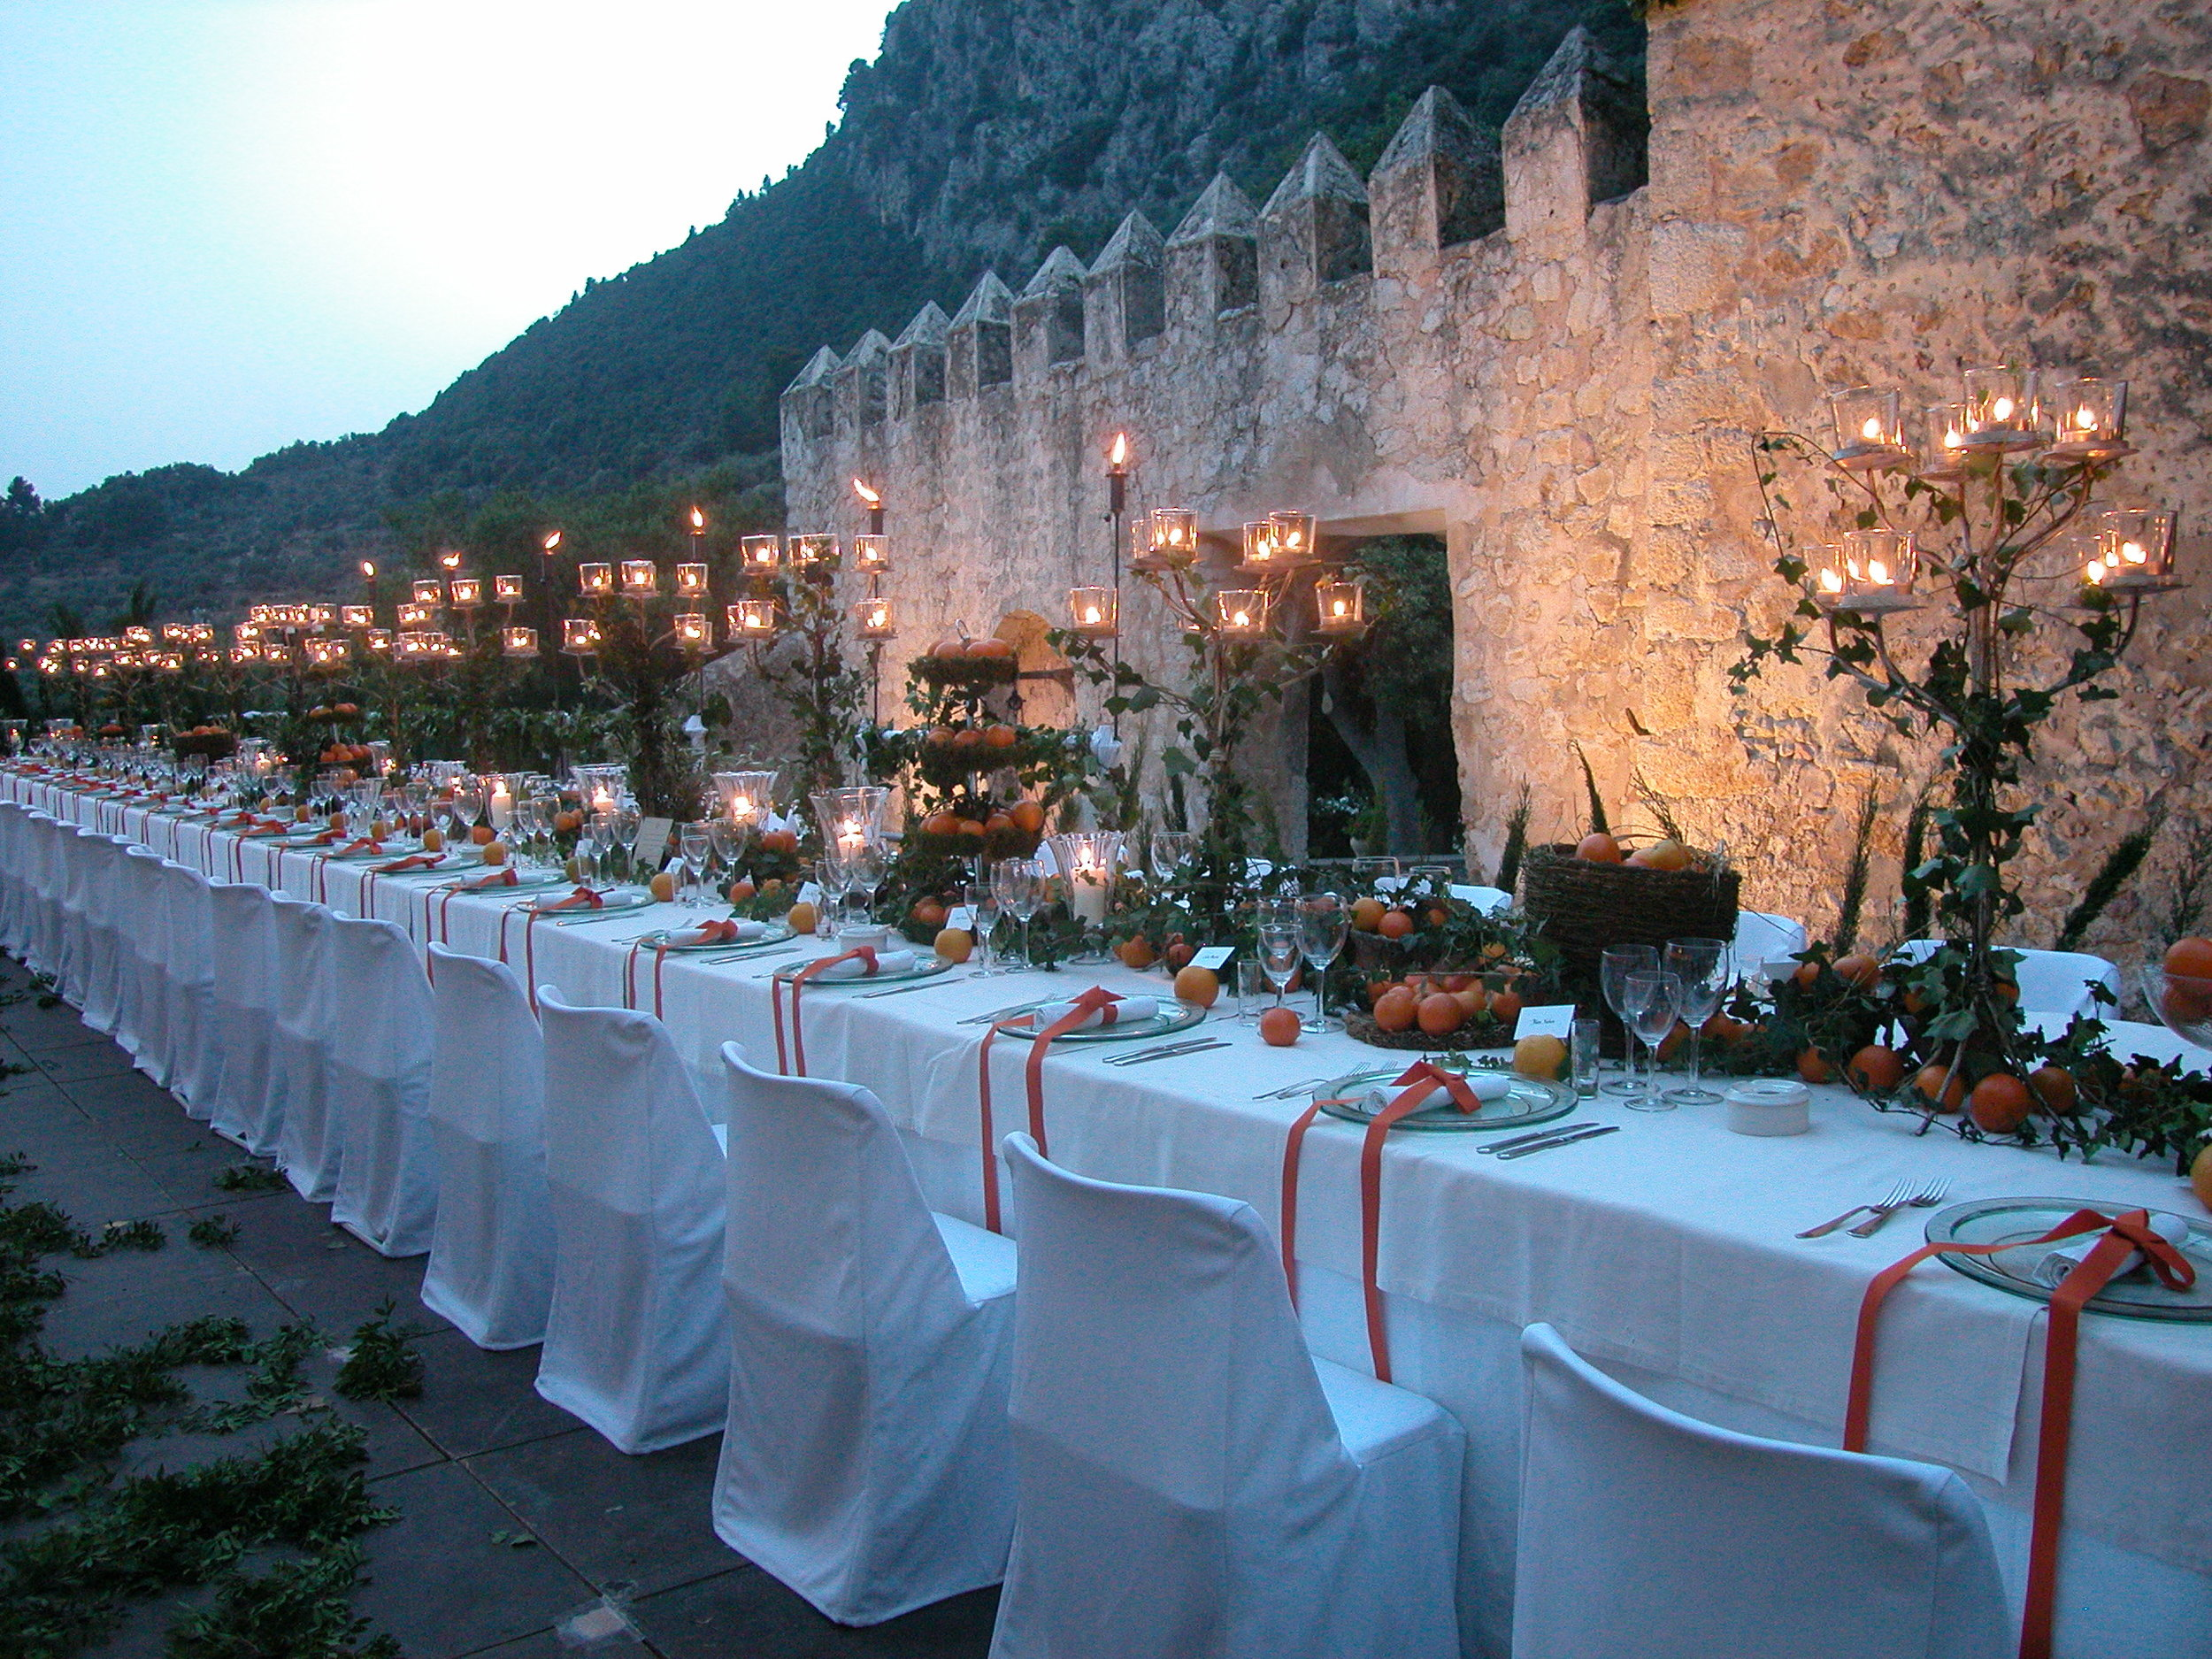 Wedding ceremony surrounded by mountains in Italy